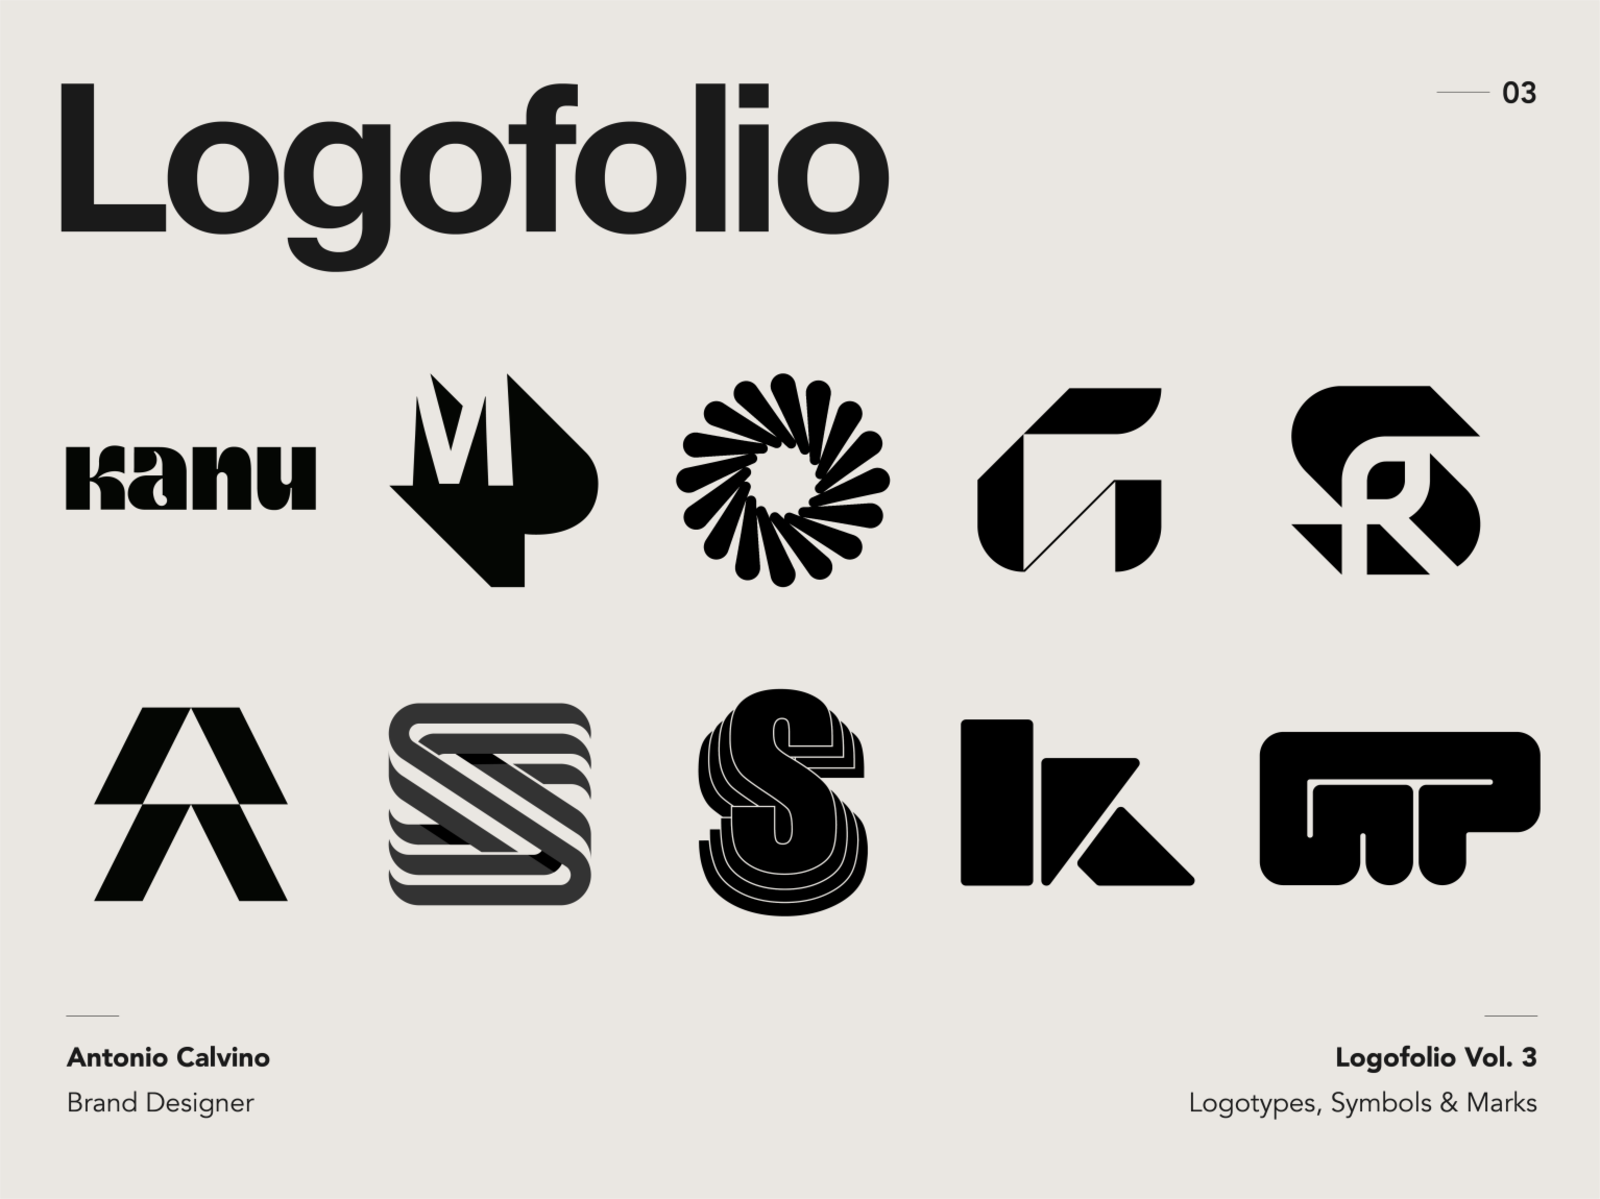 Logofolio Vol. 3 by Antonio Calvino